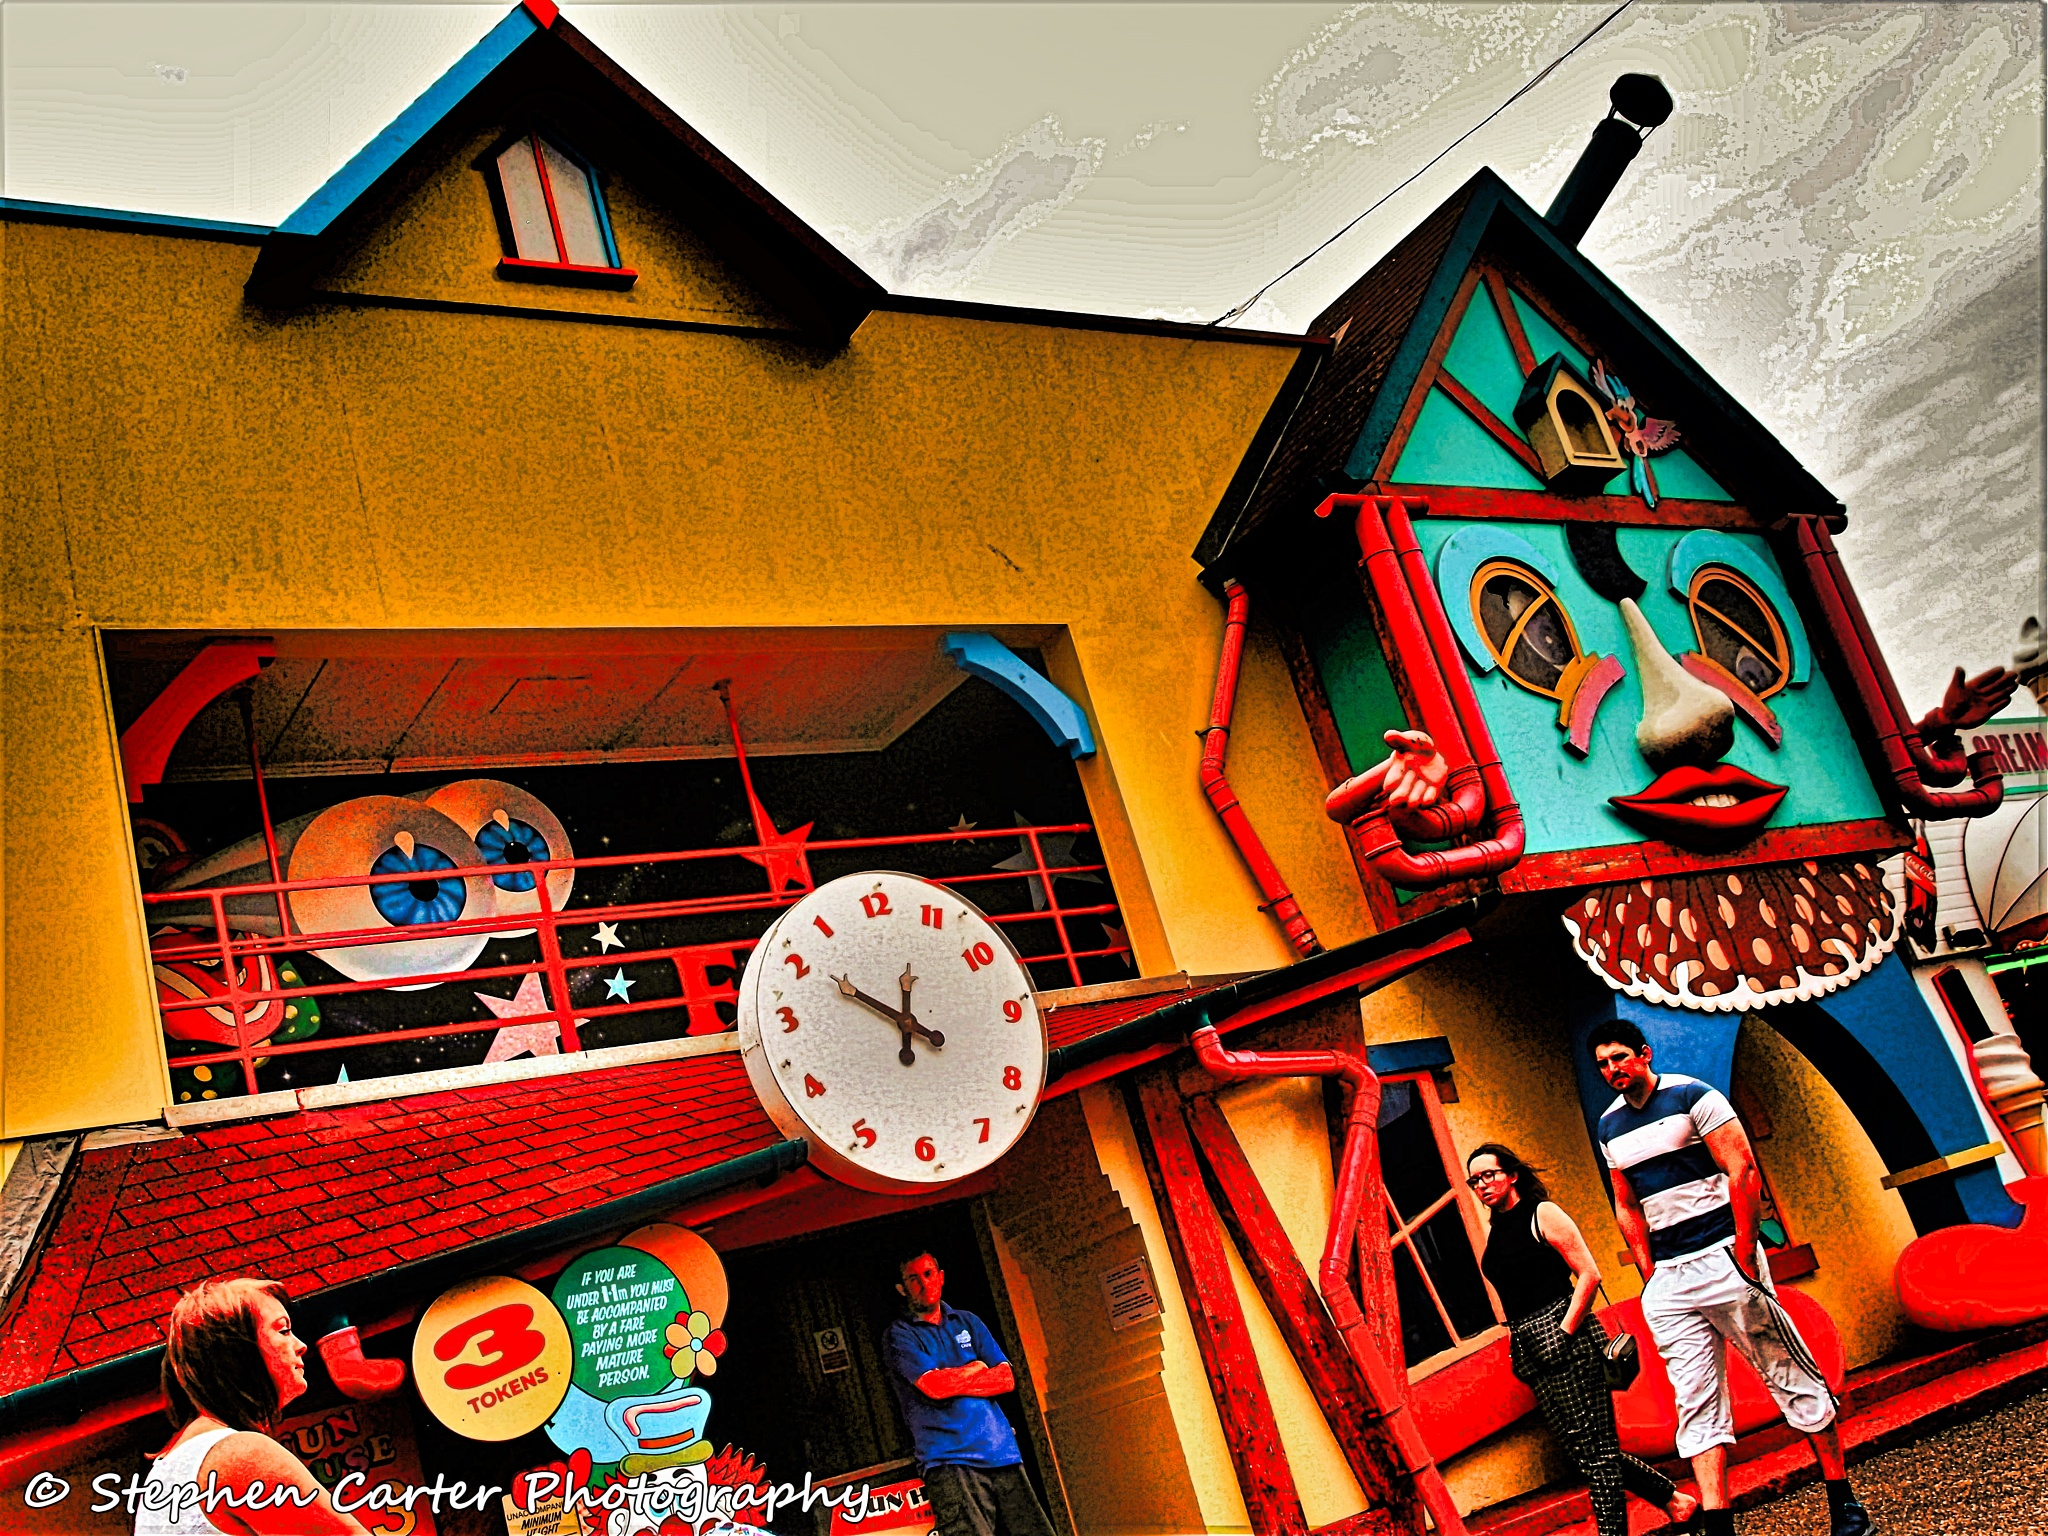 The Fun House by Stephen Carter Photography